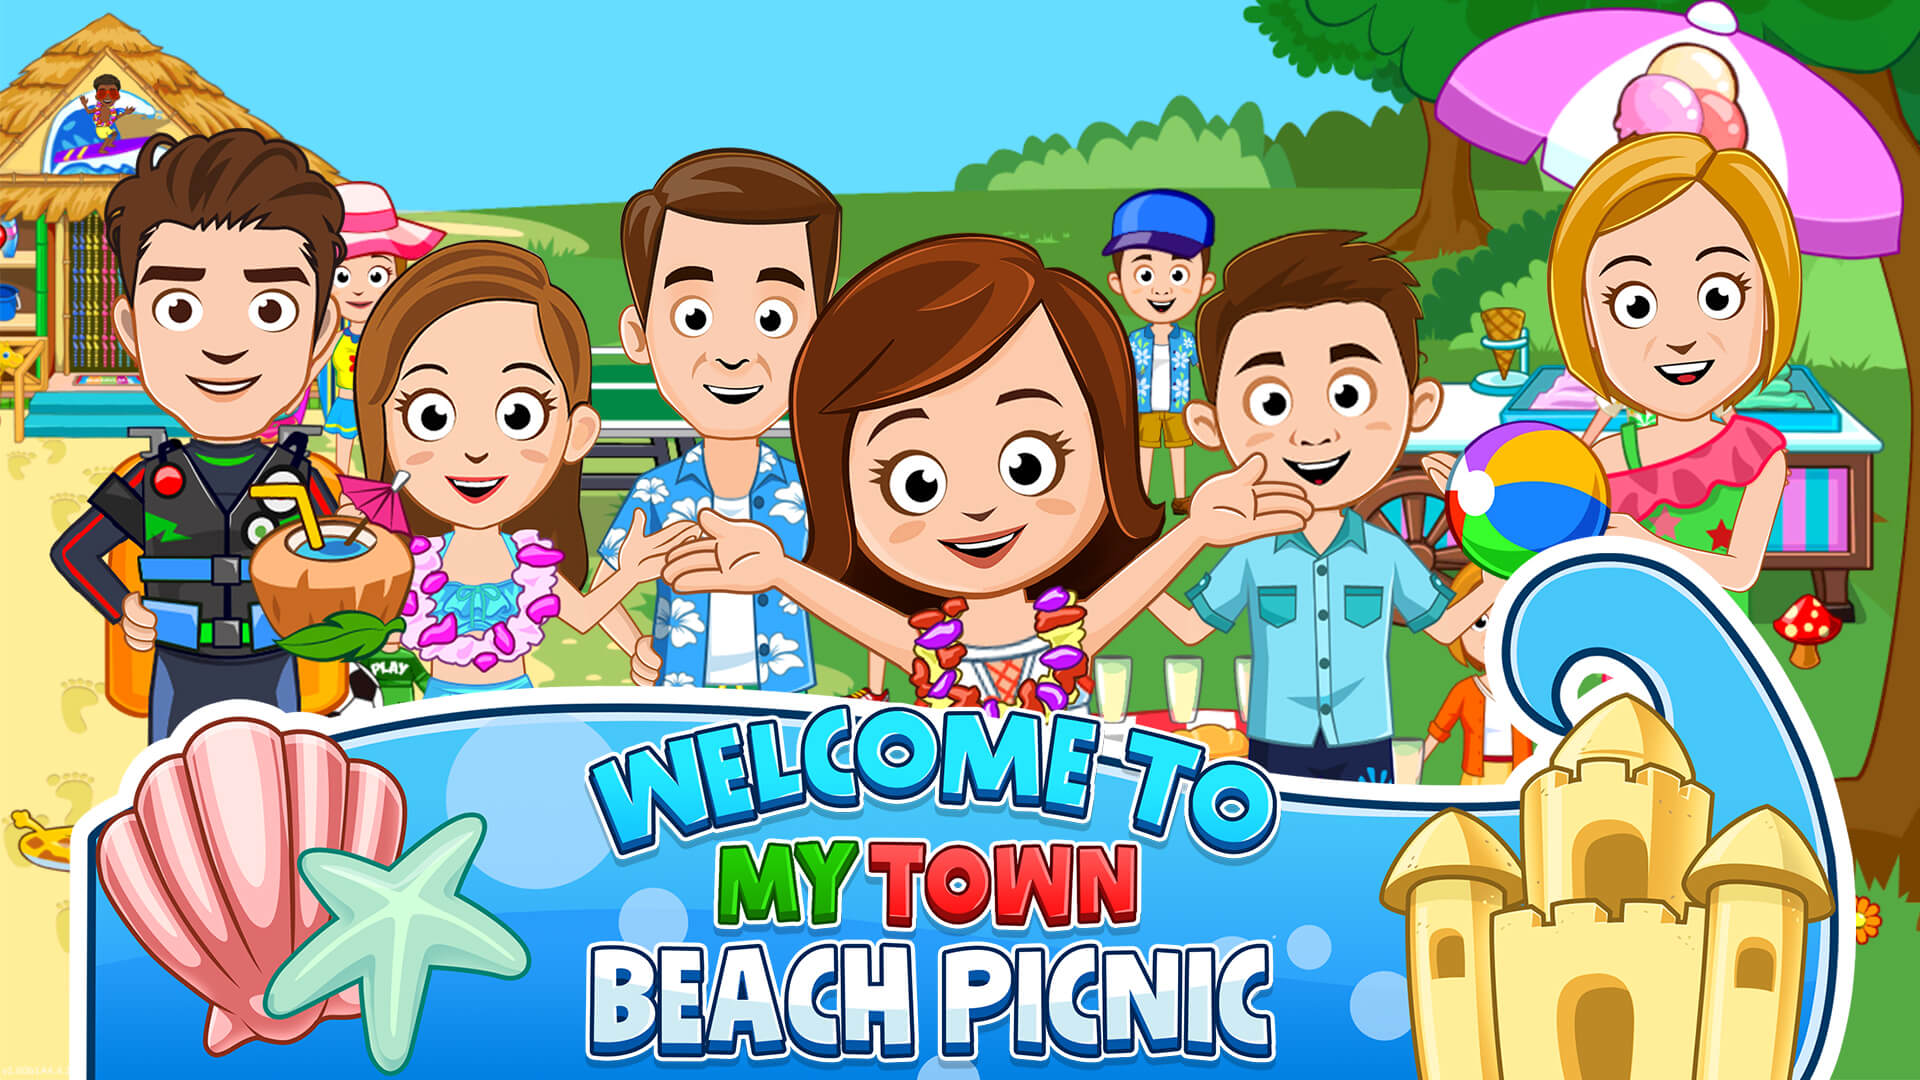 Just Before School Starts : Beach Picnic Gets a Huge Update!